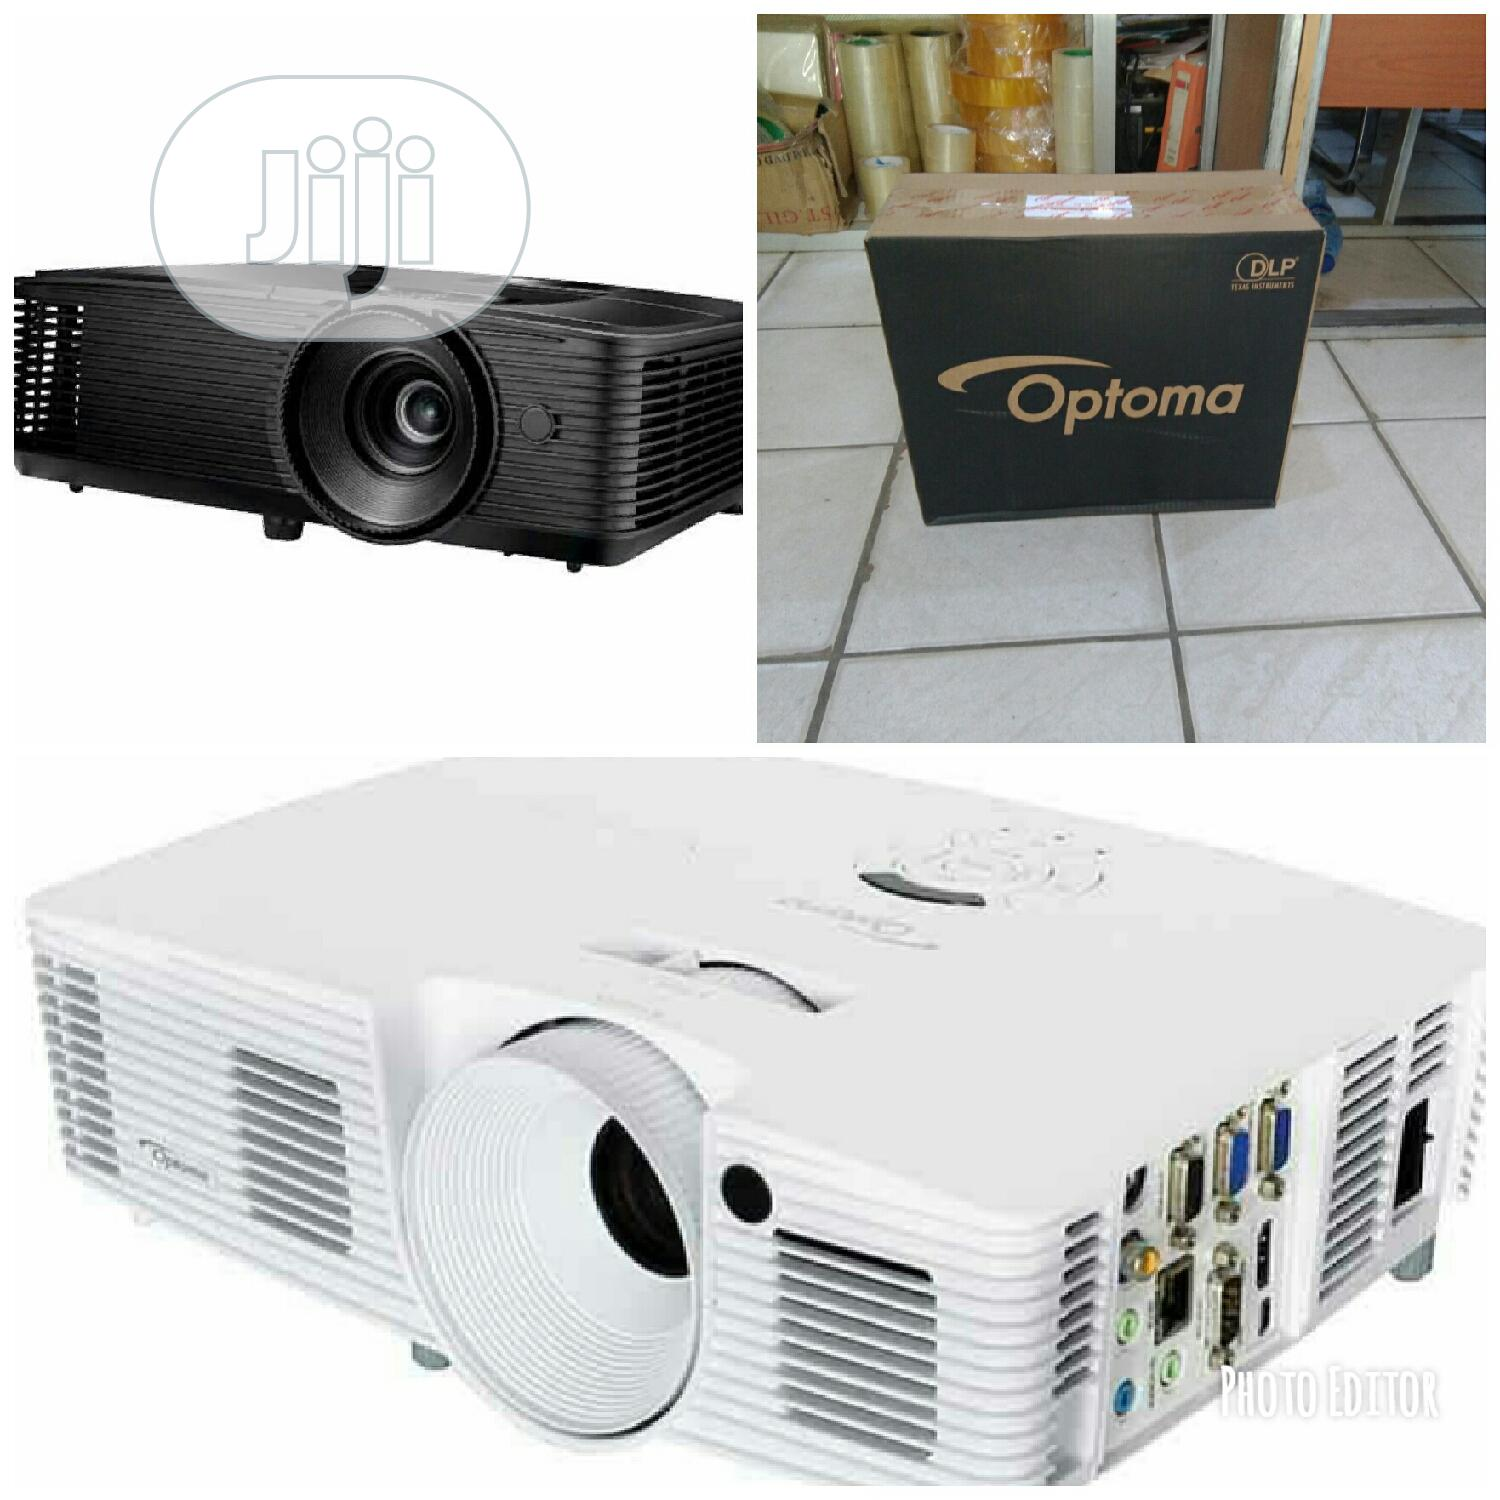 Optoma S334euk DLP 3800 Lumens Projector